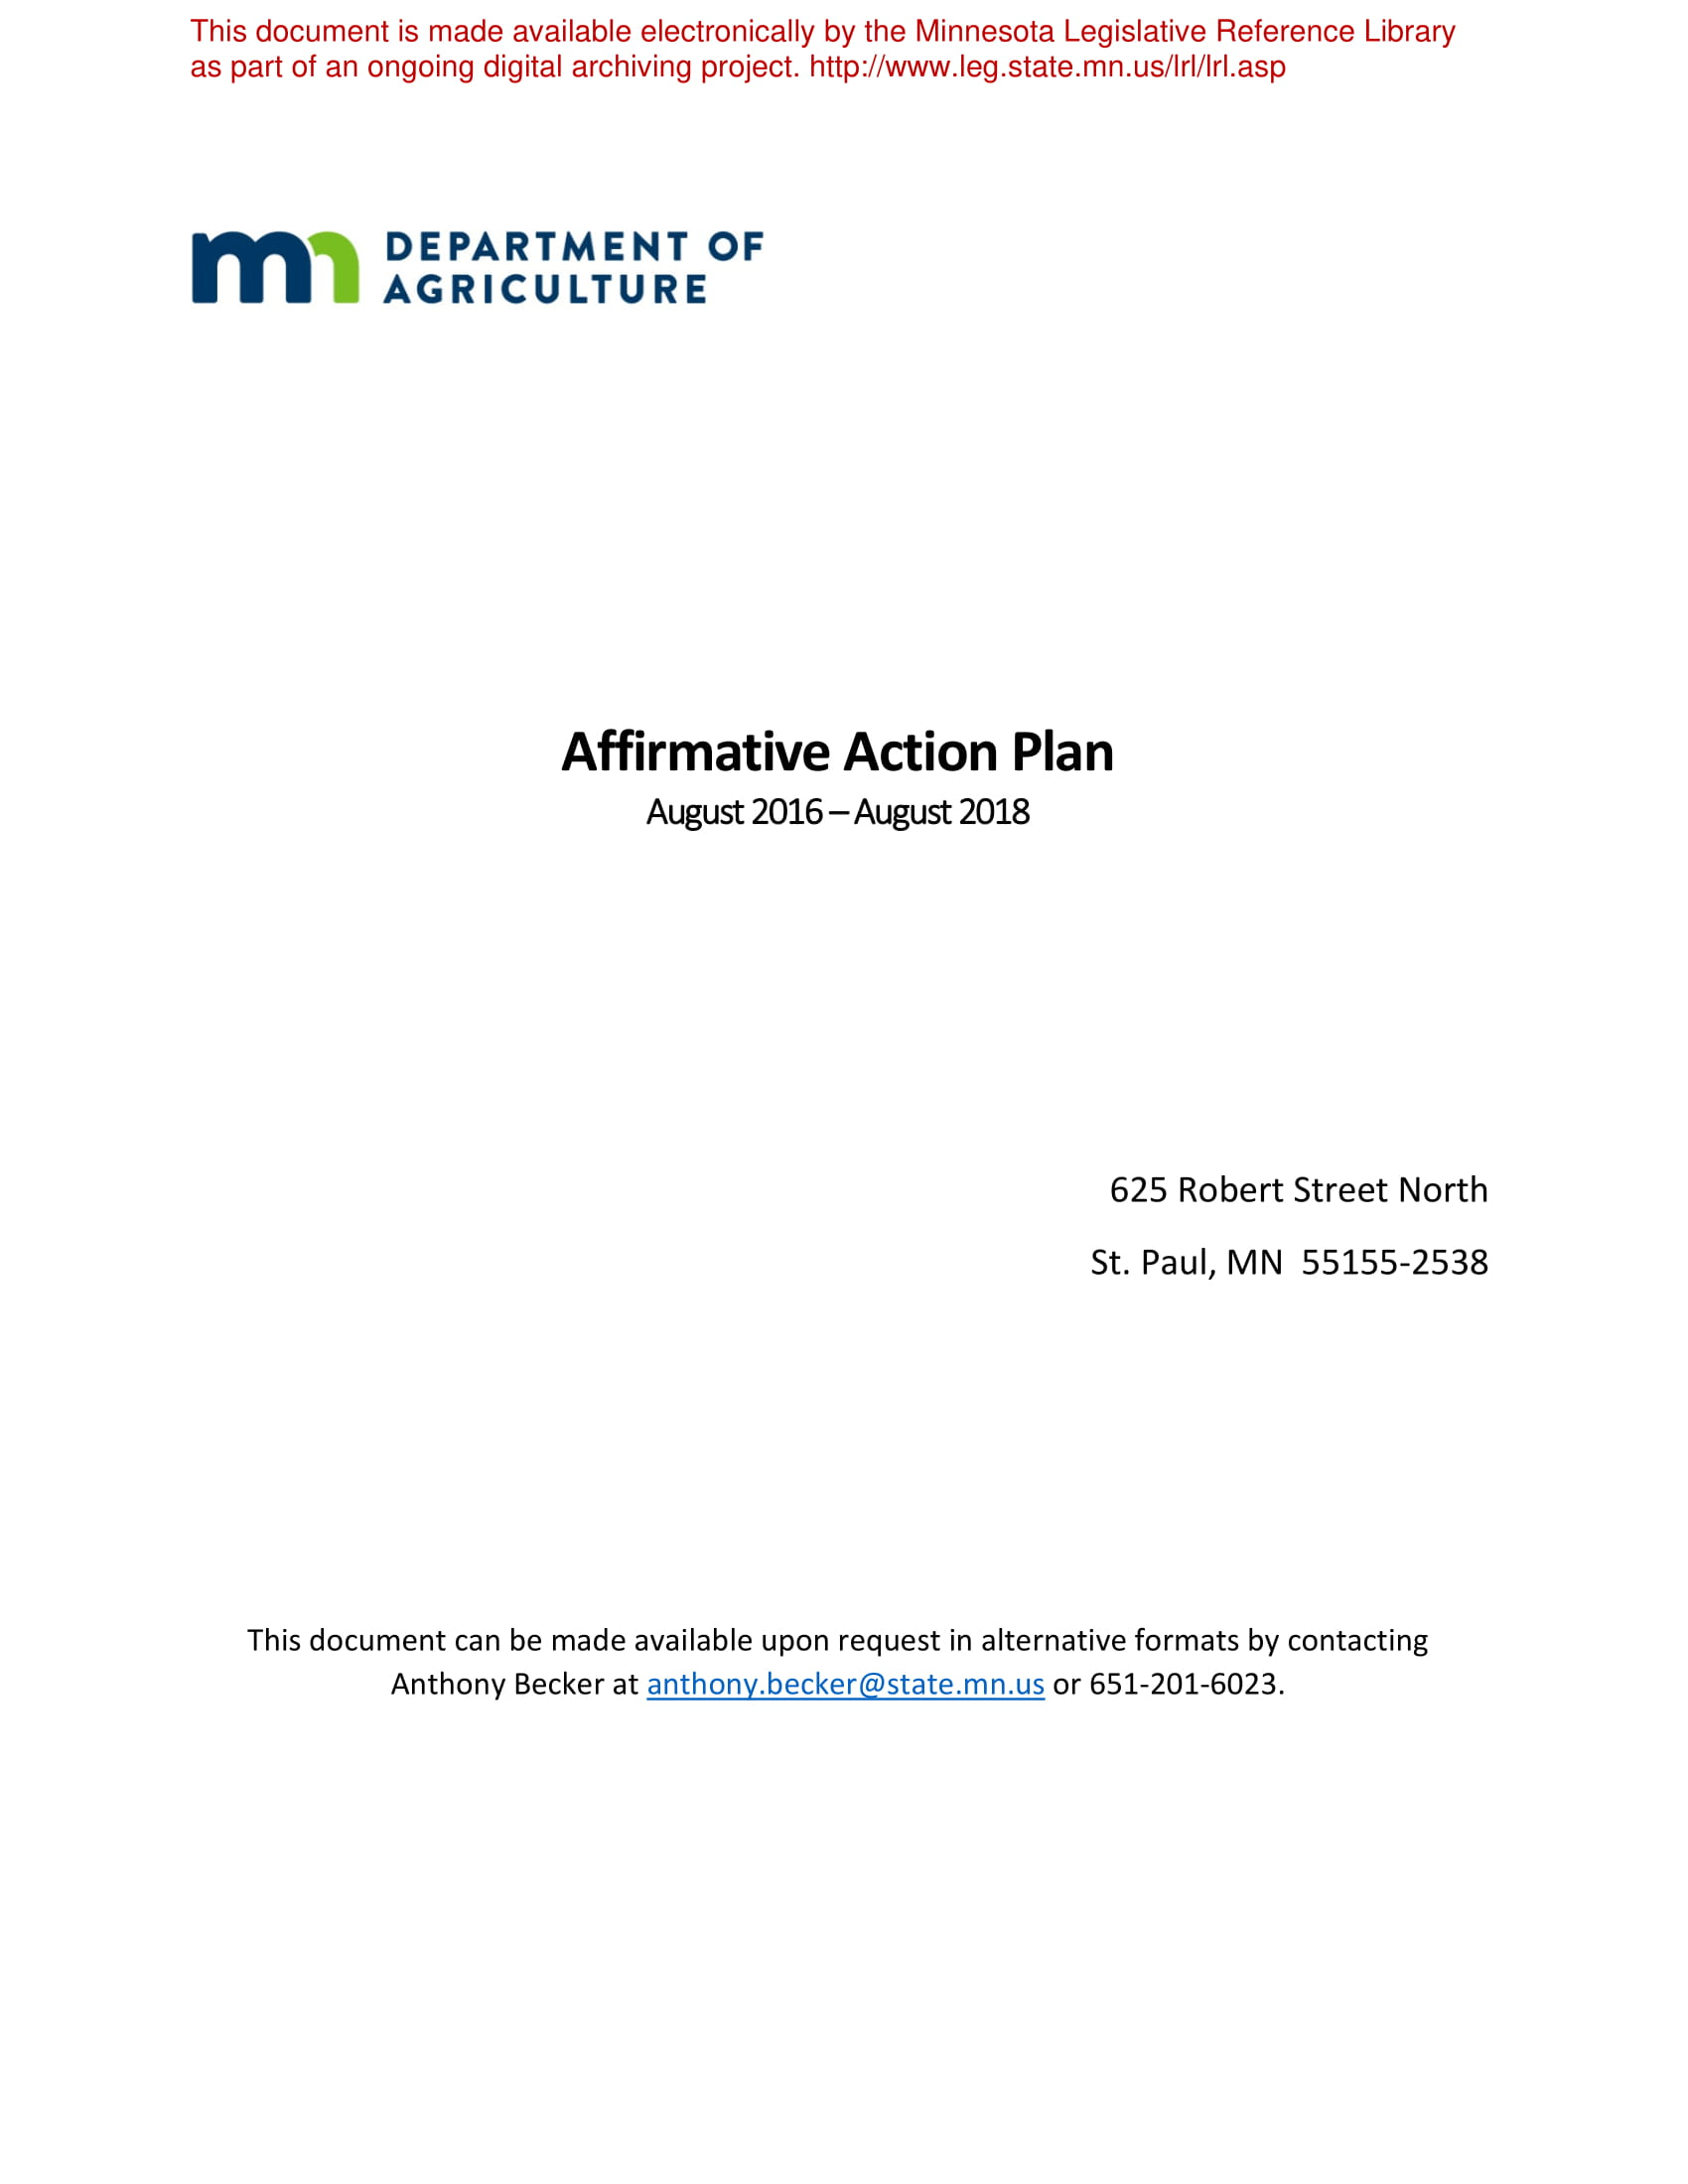 detailed affirmative action plan example 01